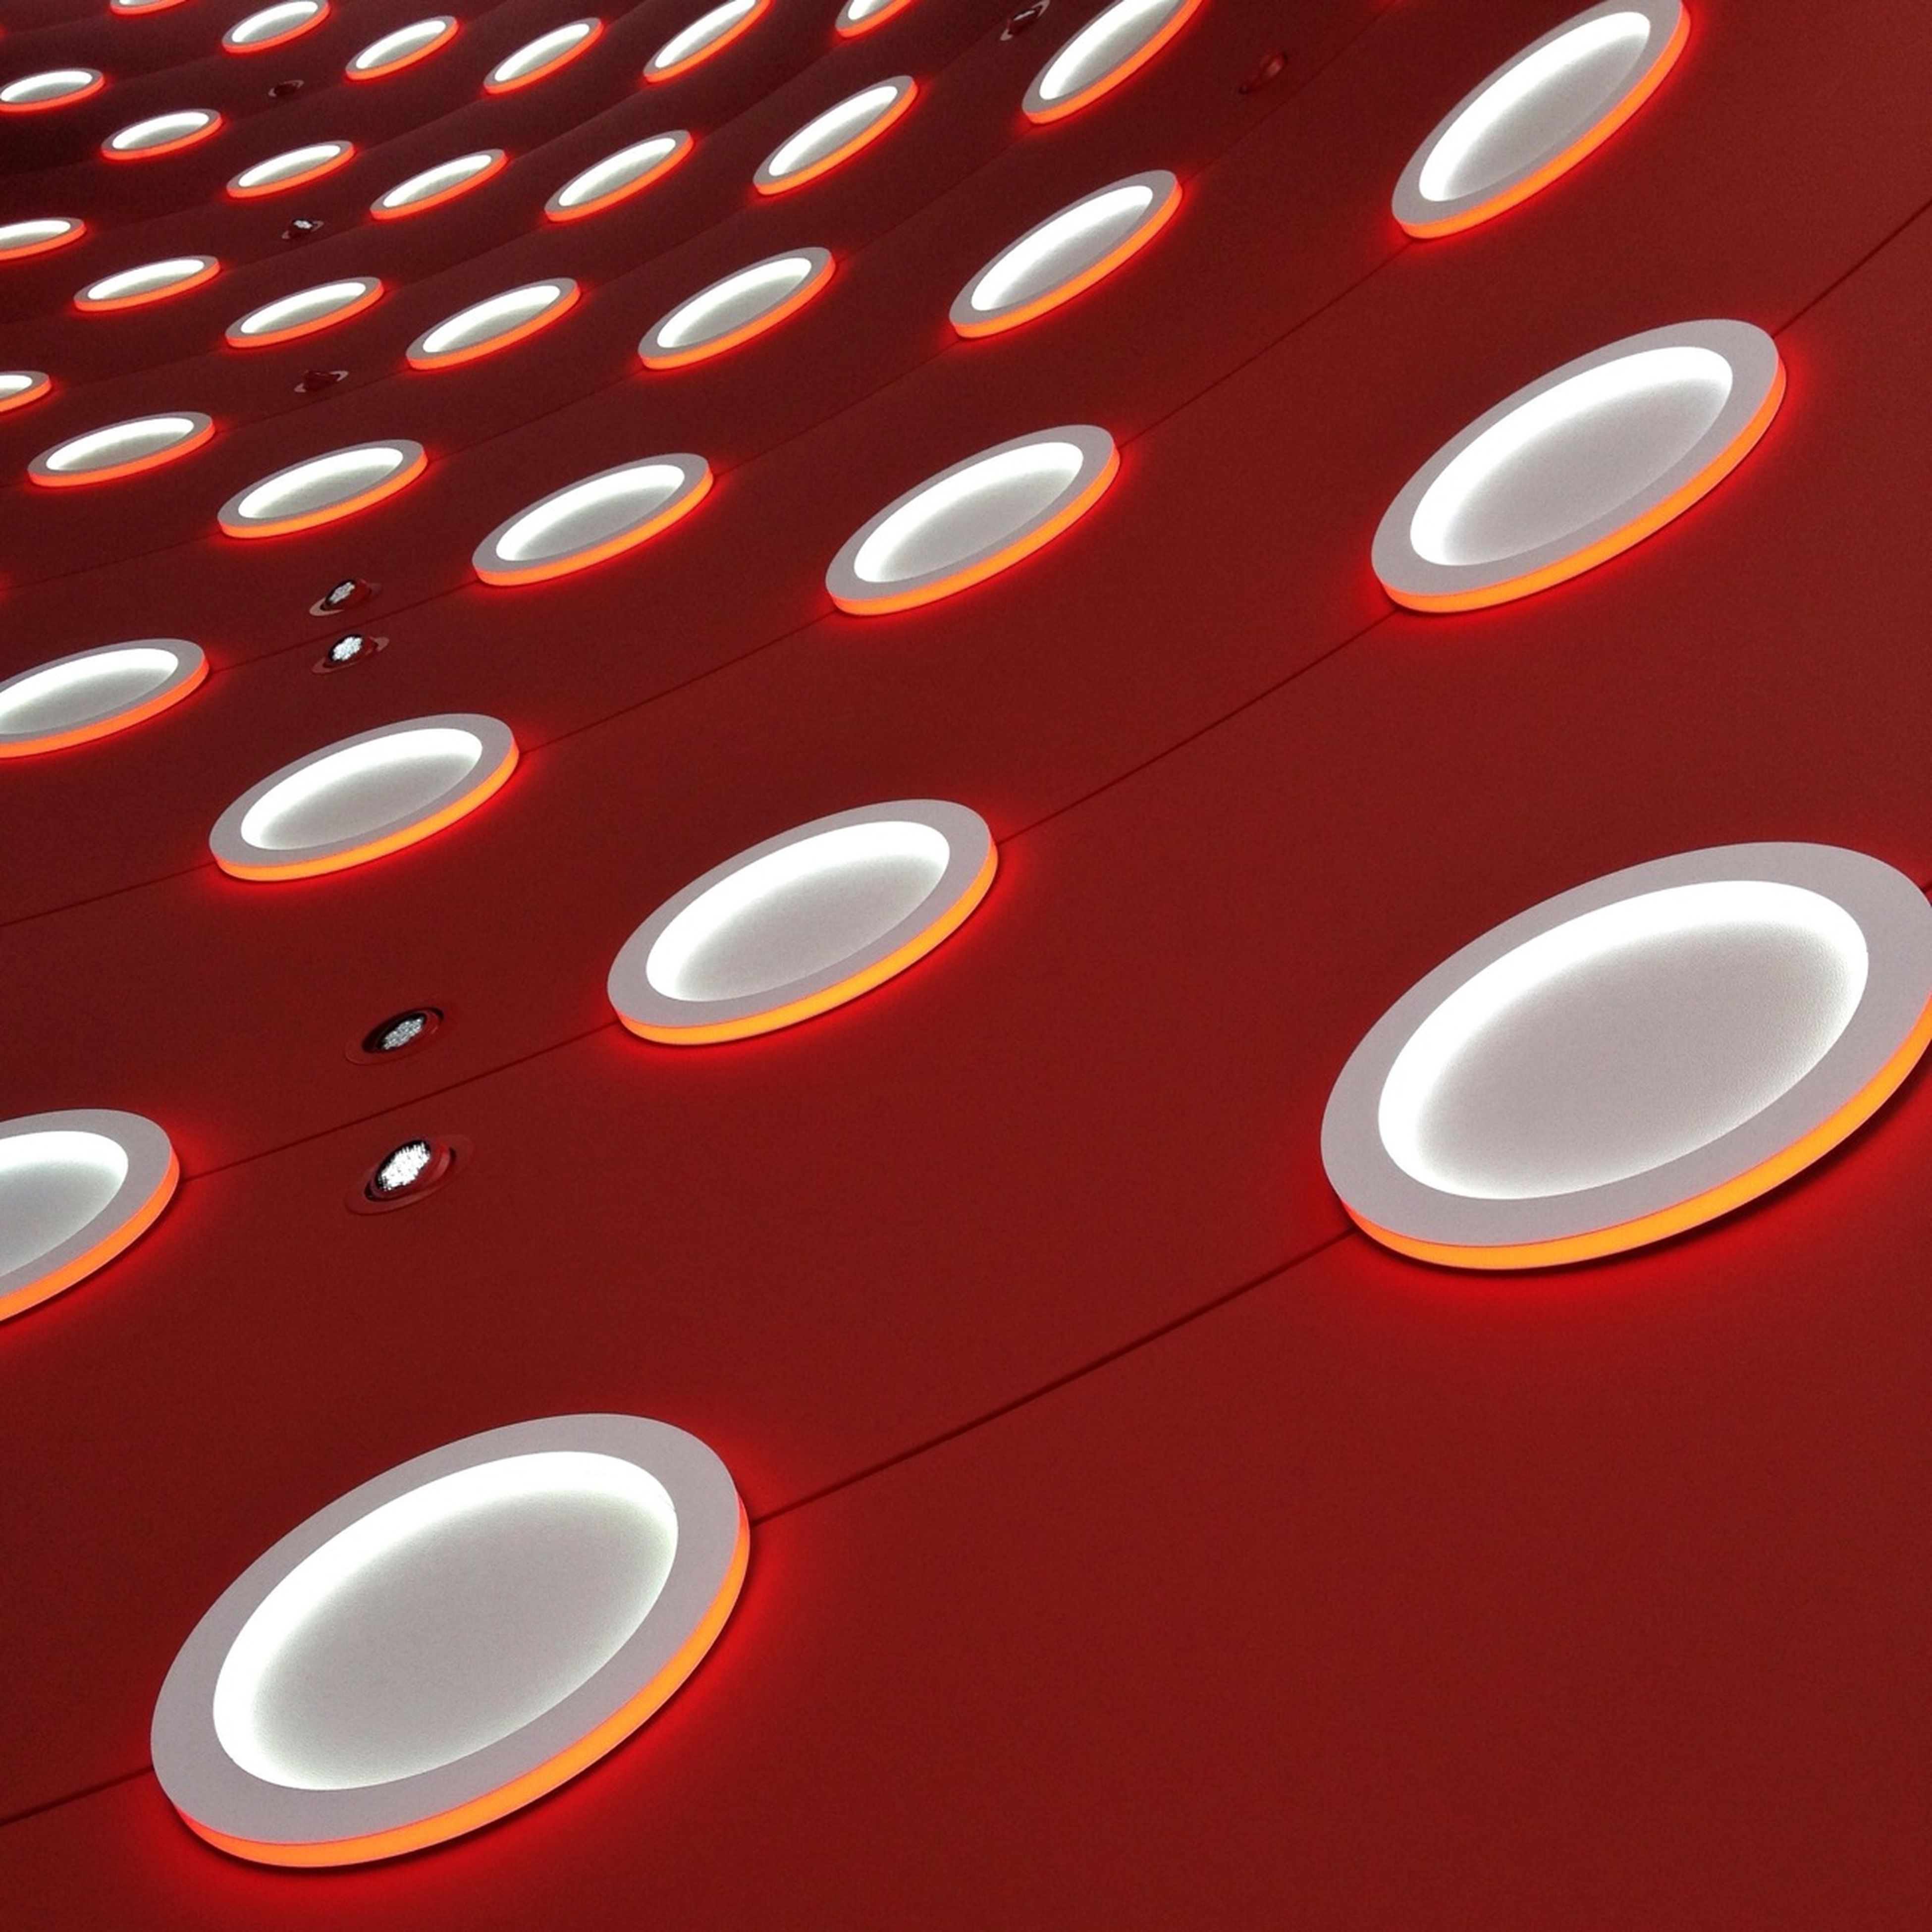 indoors, pattern, red, still life, table, circle, close-up, coffee cup, no people, drink, geometric shape, high angle view, cup, full frame, design, directly above, wall - building feature, backgrounds, metal, shape